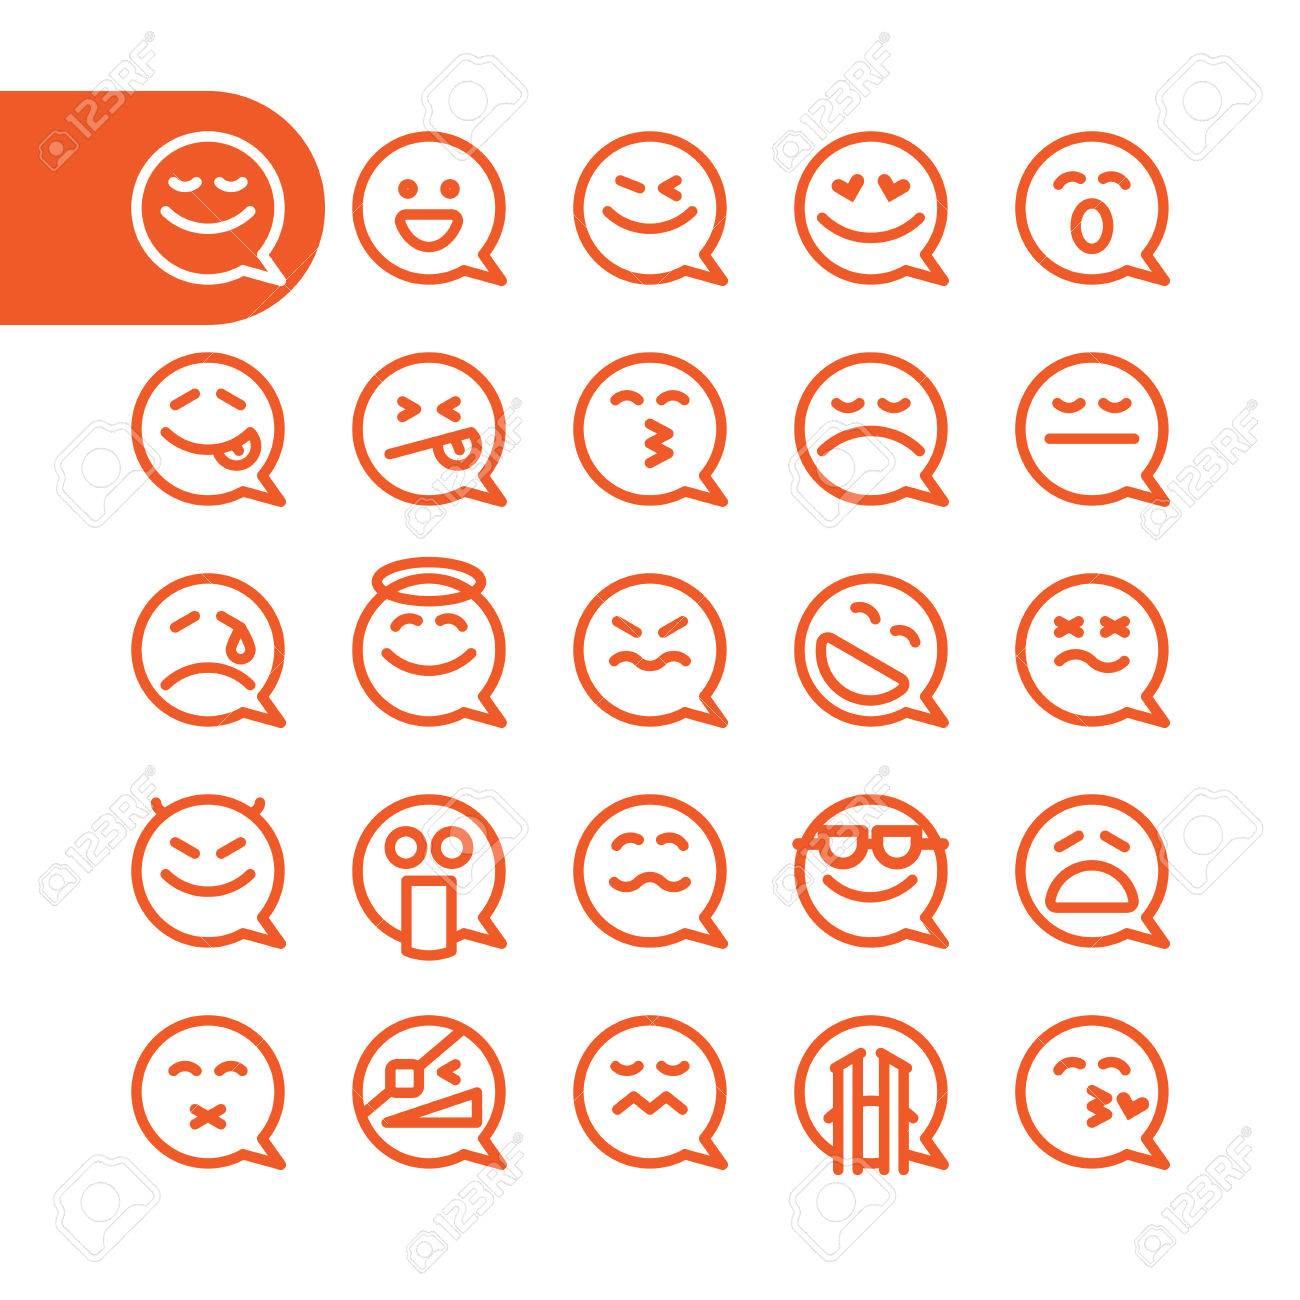 Fat Line Icon Set of speech bubble emoticons for web and mobile. Modern minimalistic flat design elements of speech bubble emoji isolated on white background, vector illustration. - 53202248